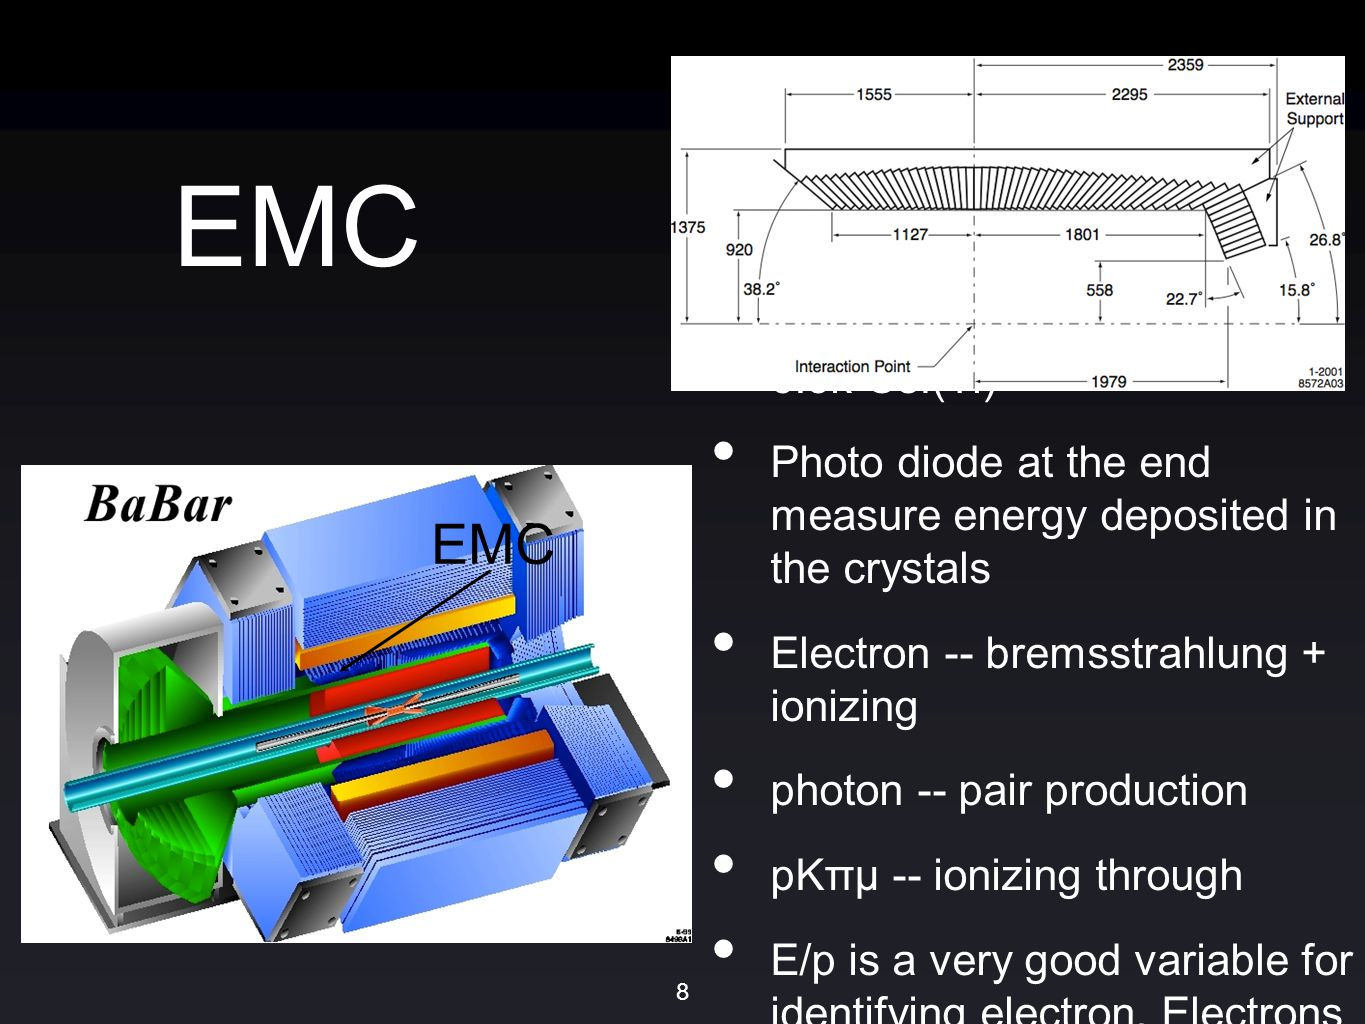 EMC ElectroMagnetic Calorimeter 6.5k CsI(Tl) Photo diode at the end measure energy deposited in the crystals Electron -- bremsstrahlung + ionizing photon -- pair production pKπμ -- ionizing through E/p is a very good variable for identifying electron.